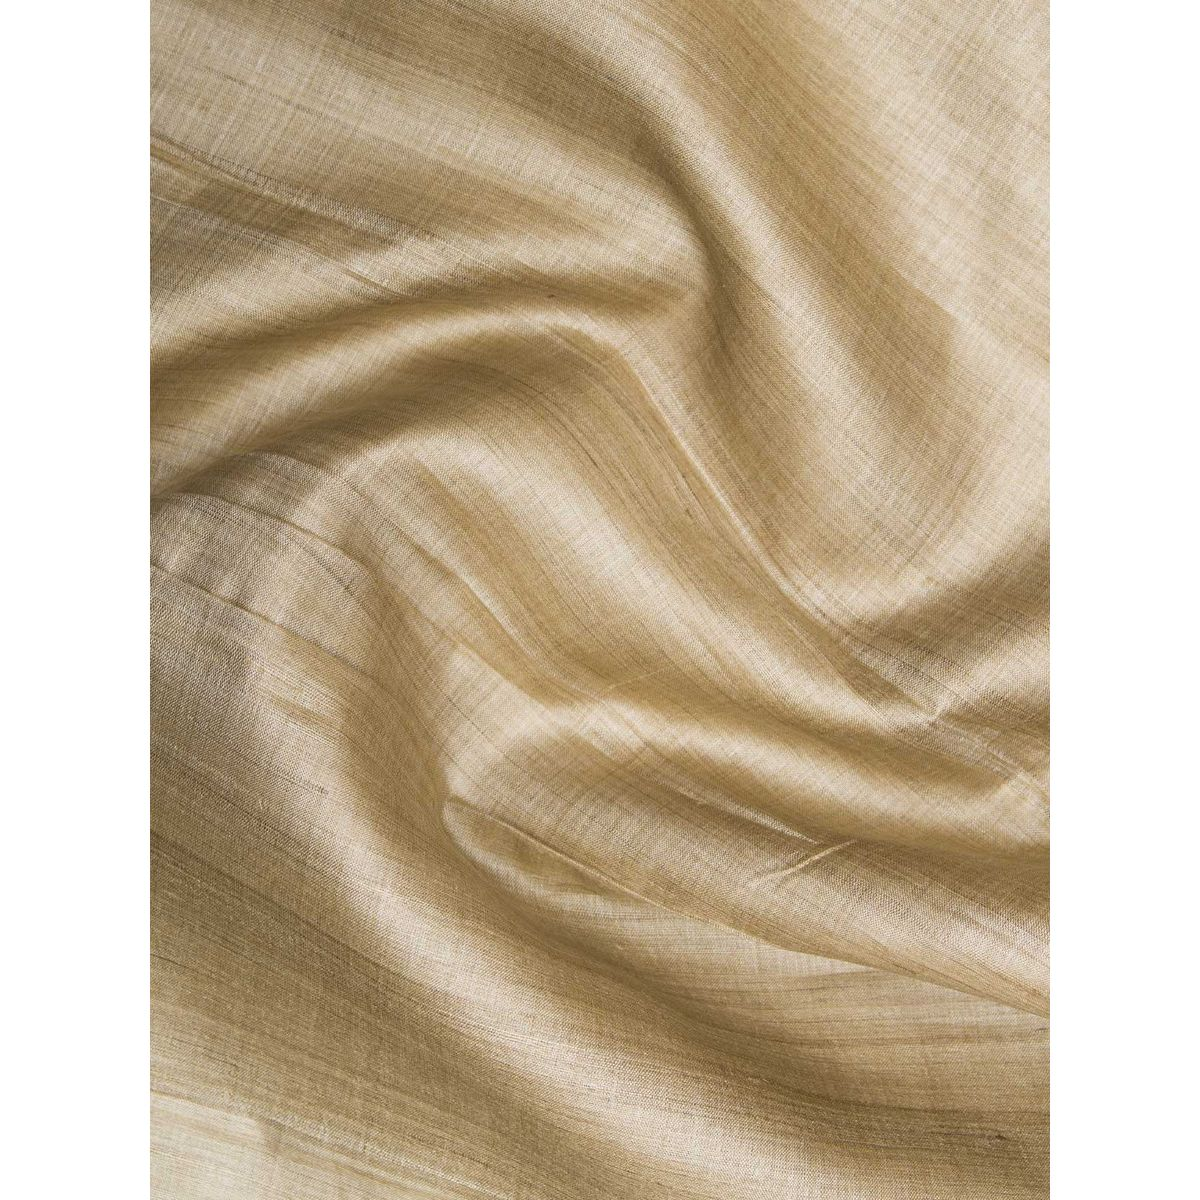 Buy Online Light Brown Color Tussar Silk Fabric